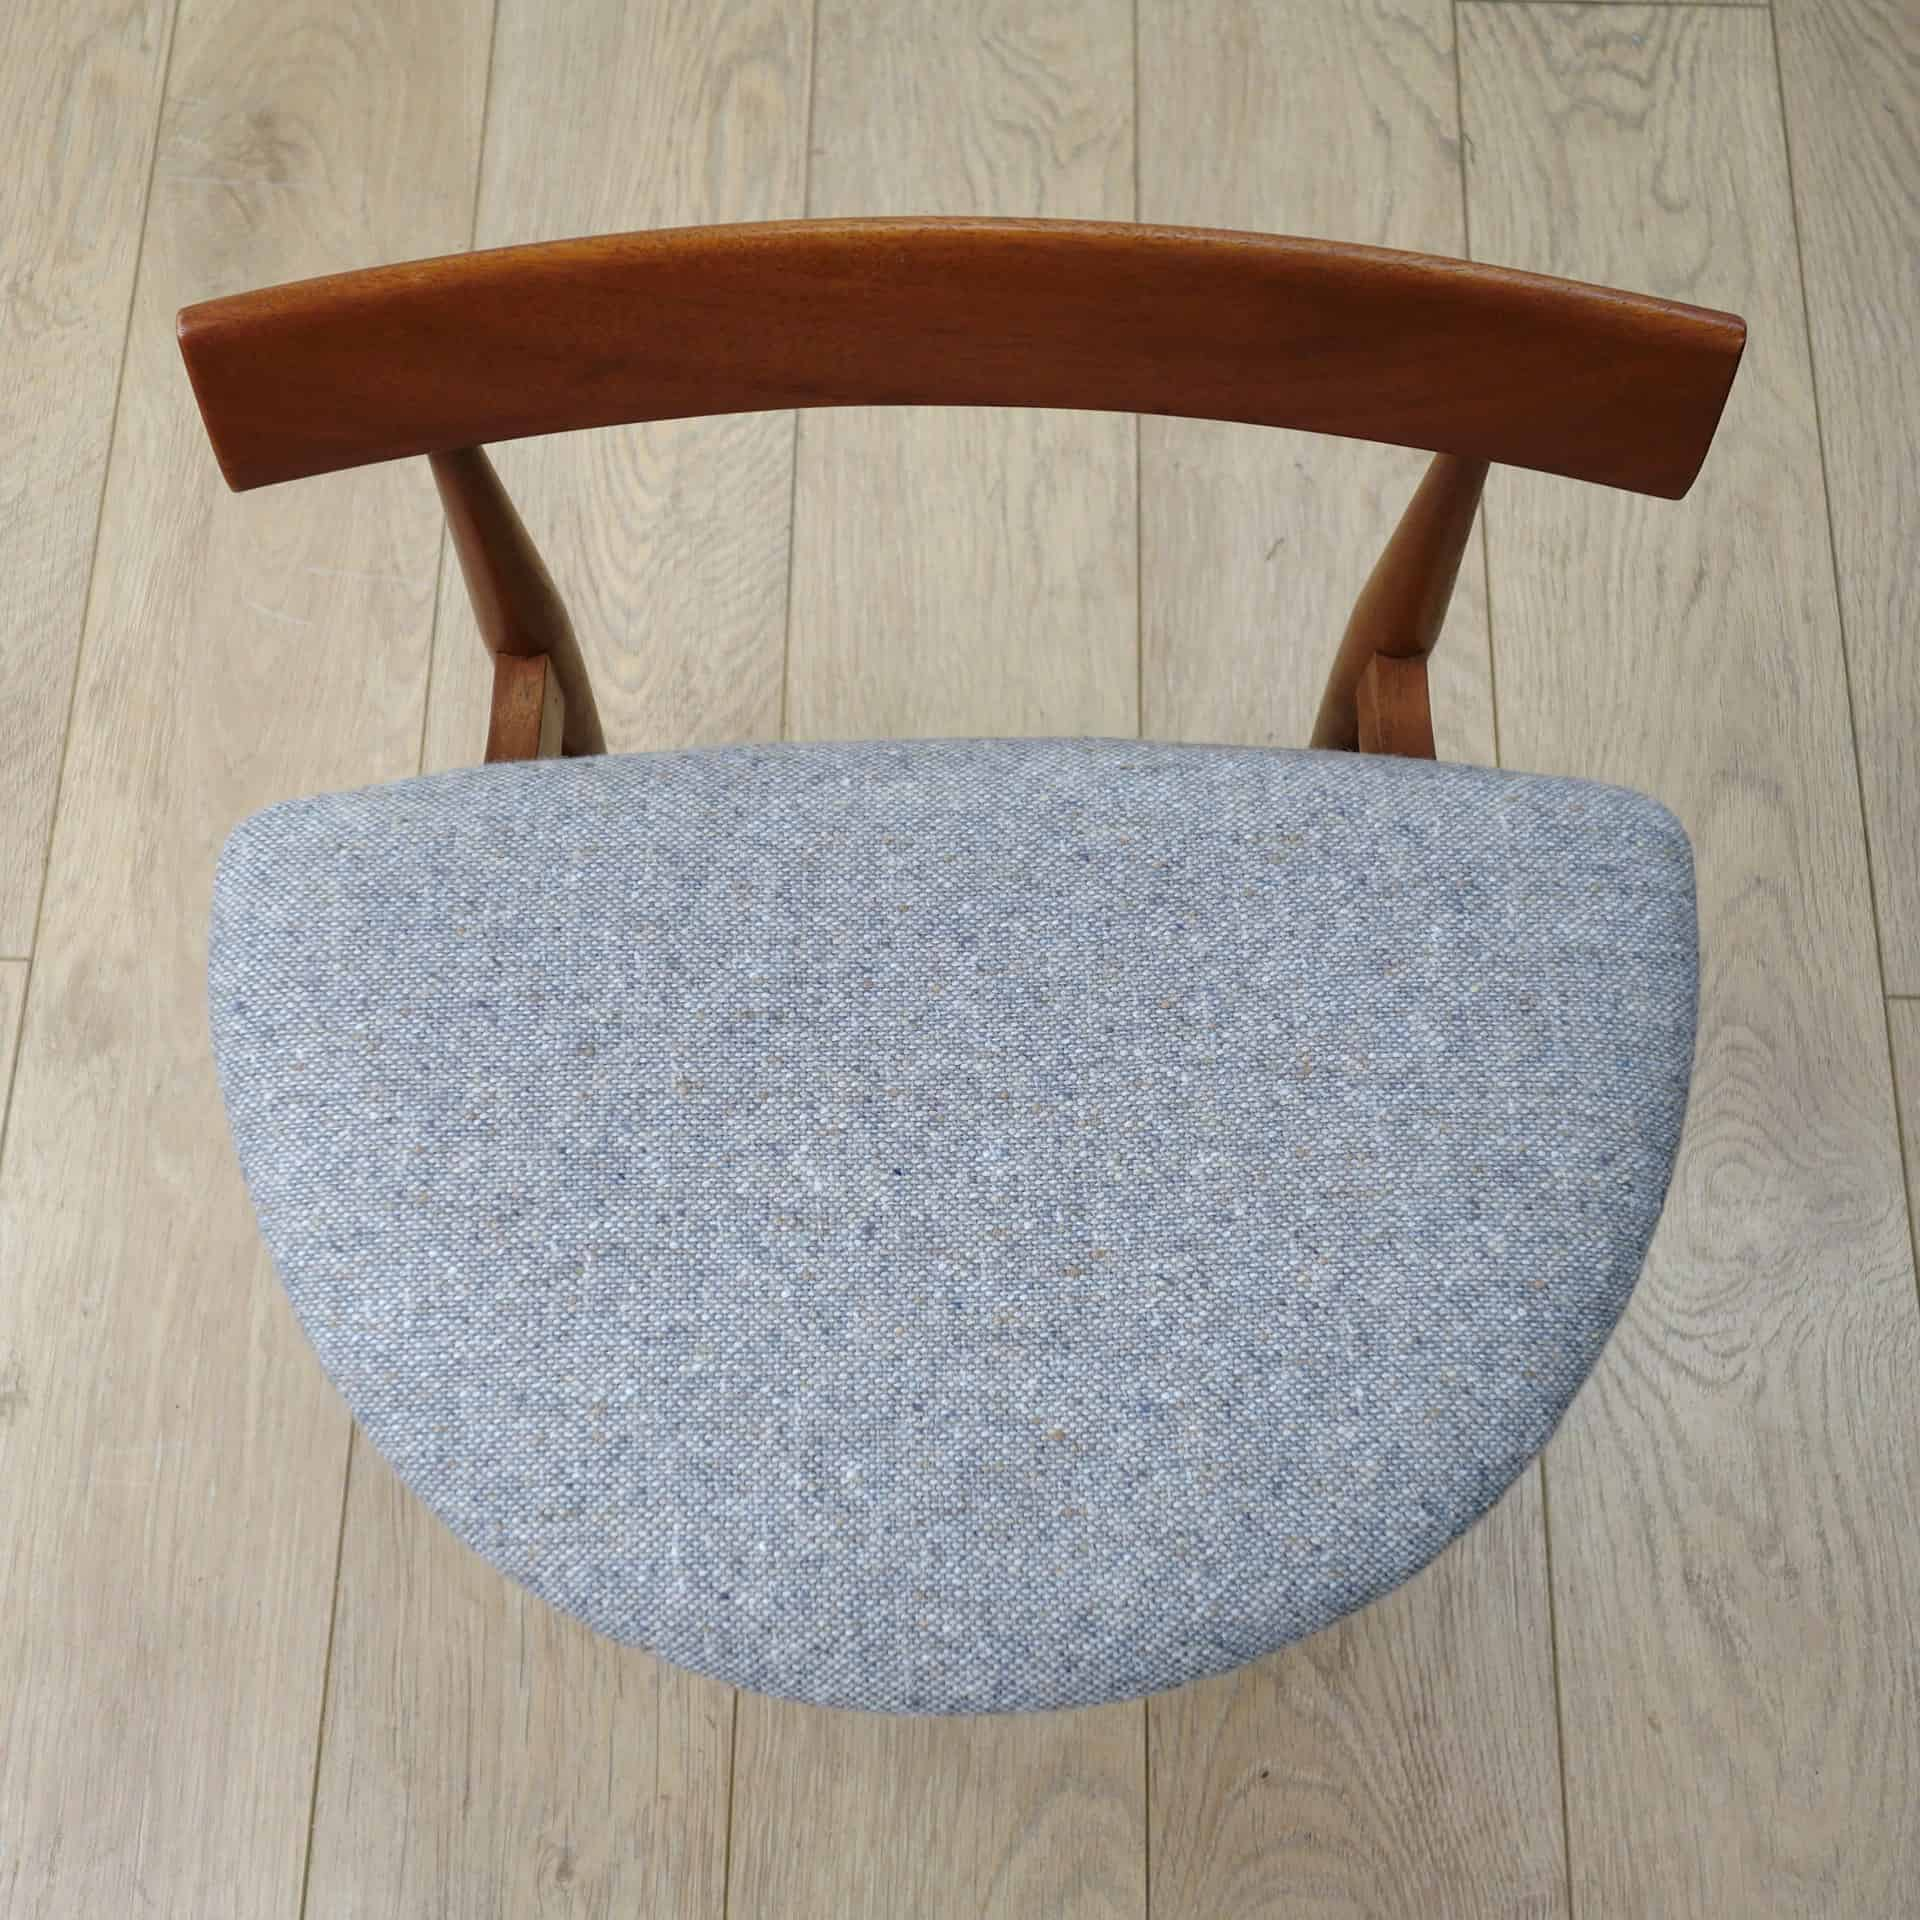 60s Greaves and thomas dressing table chair